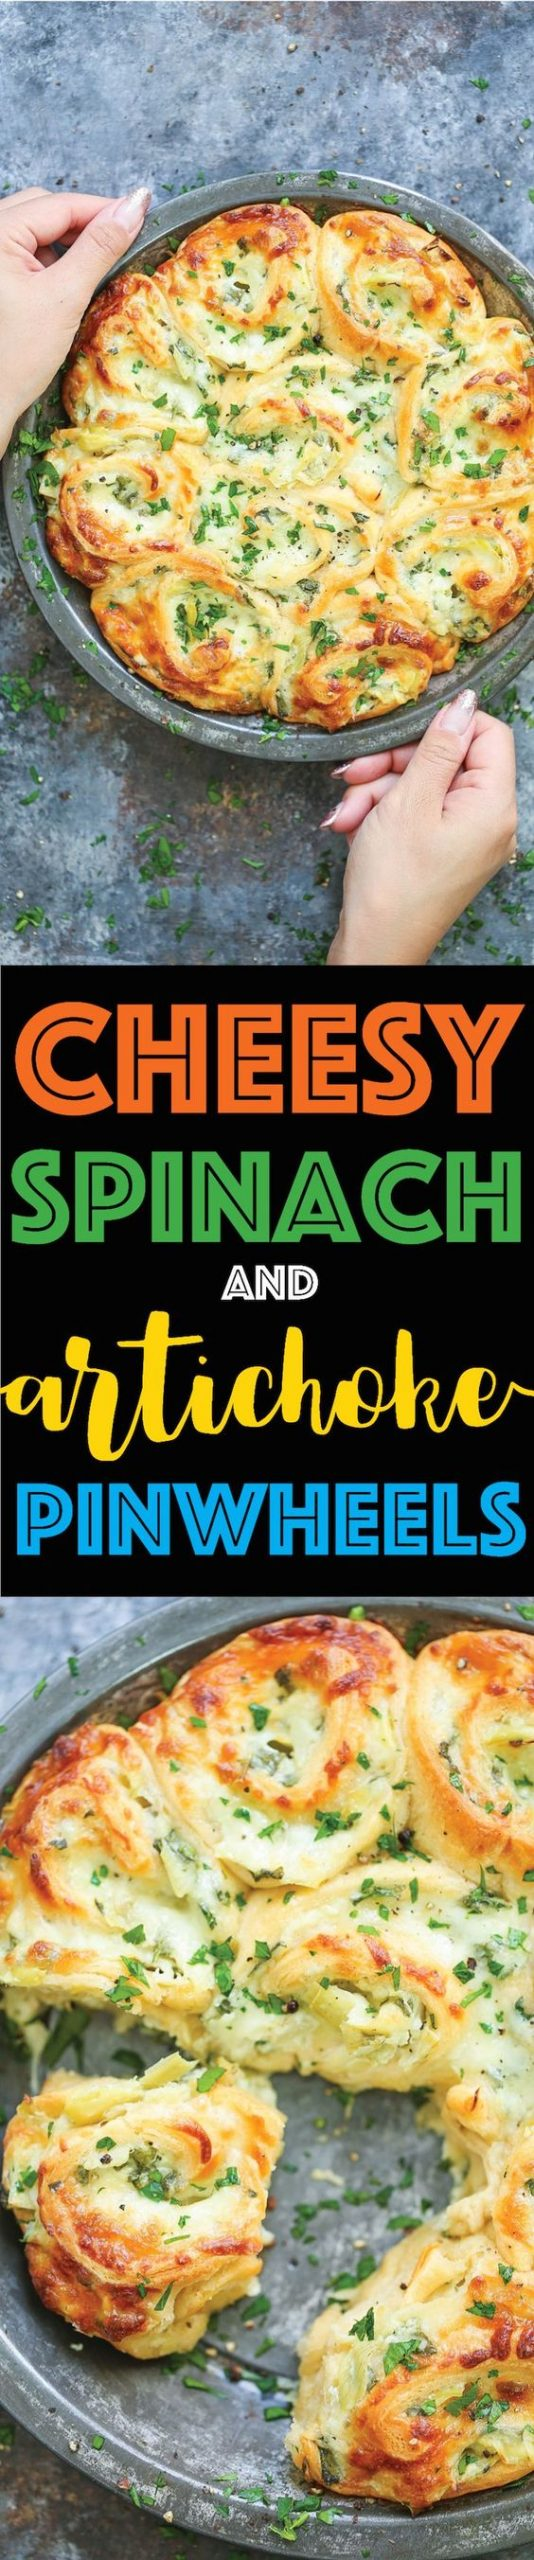 Cheesy Spinach and Artichoke Pinwheels - Everyone's favorite spinach and artichoke dip in these cheesy, creamy BAKED roll ups!!! So good for GAME DAY!!!